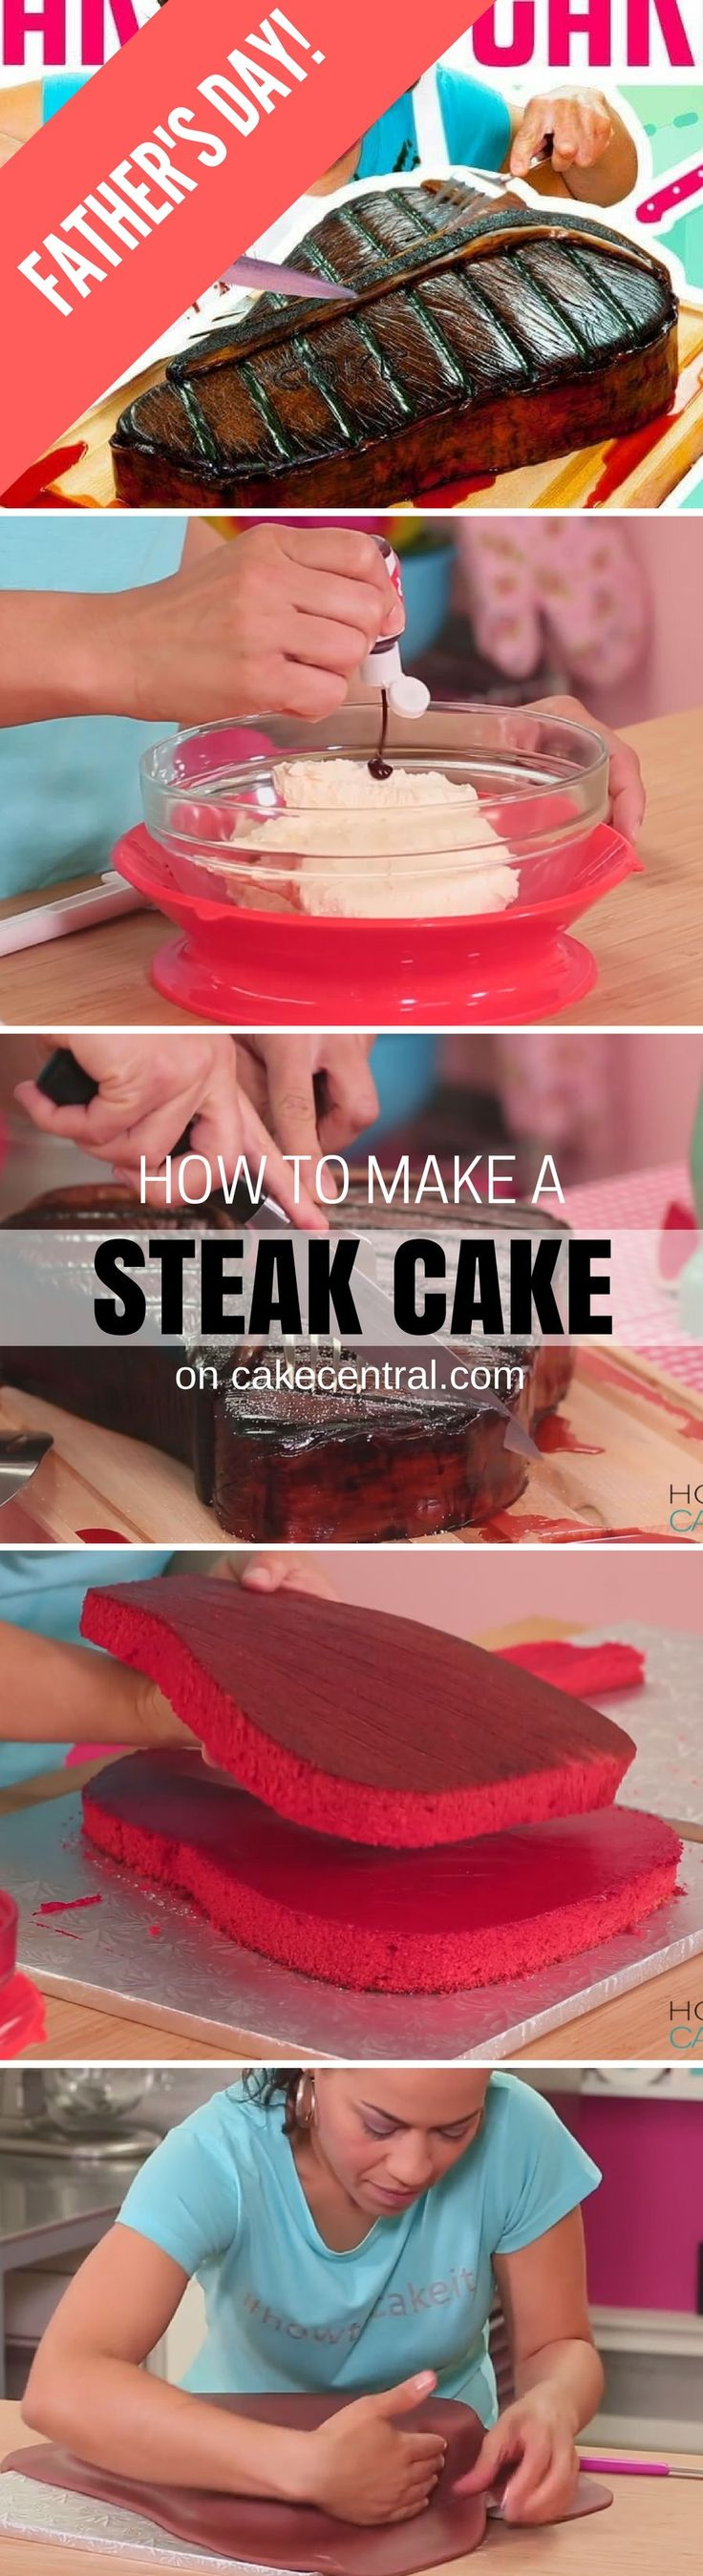 This week, I'm treating my Dad to a giant T-bone steak cake for Father's Day! To make this Steak cake, I whipped up some of my Ultimate Red Velvet Cake, iced it with crimson-dyed Italian Meringue buttercream and added fondant and painted details to make it look so realistic.